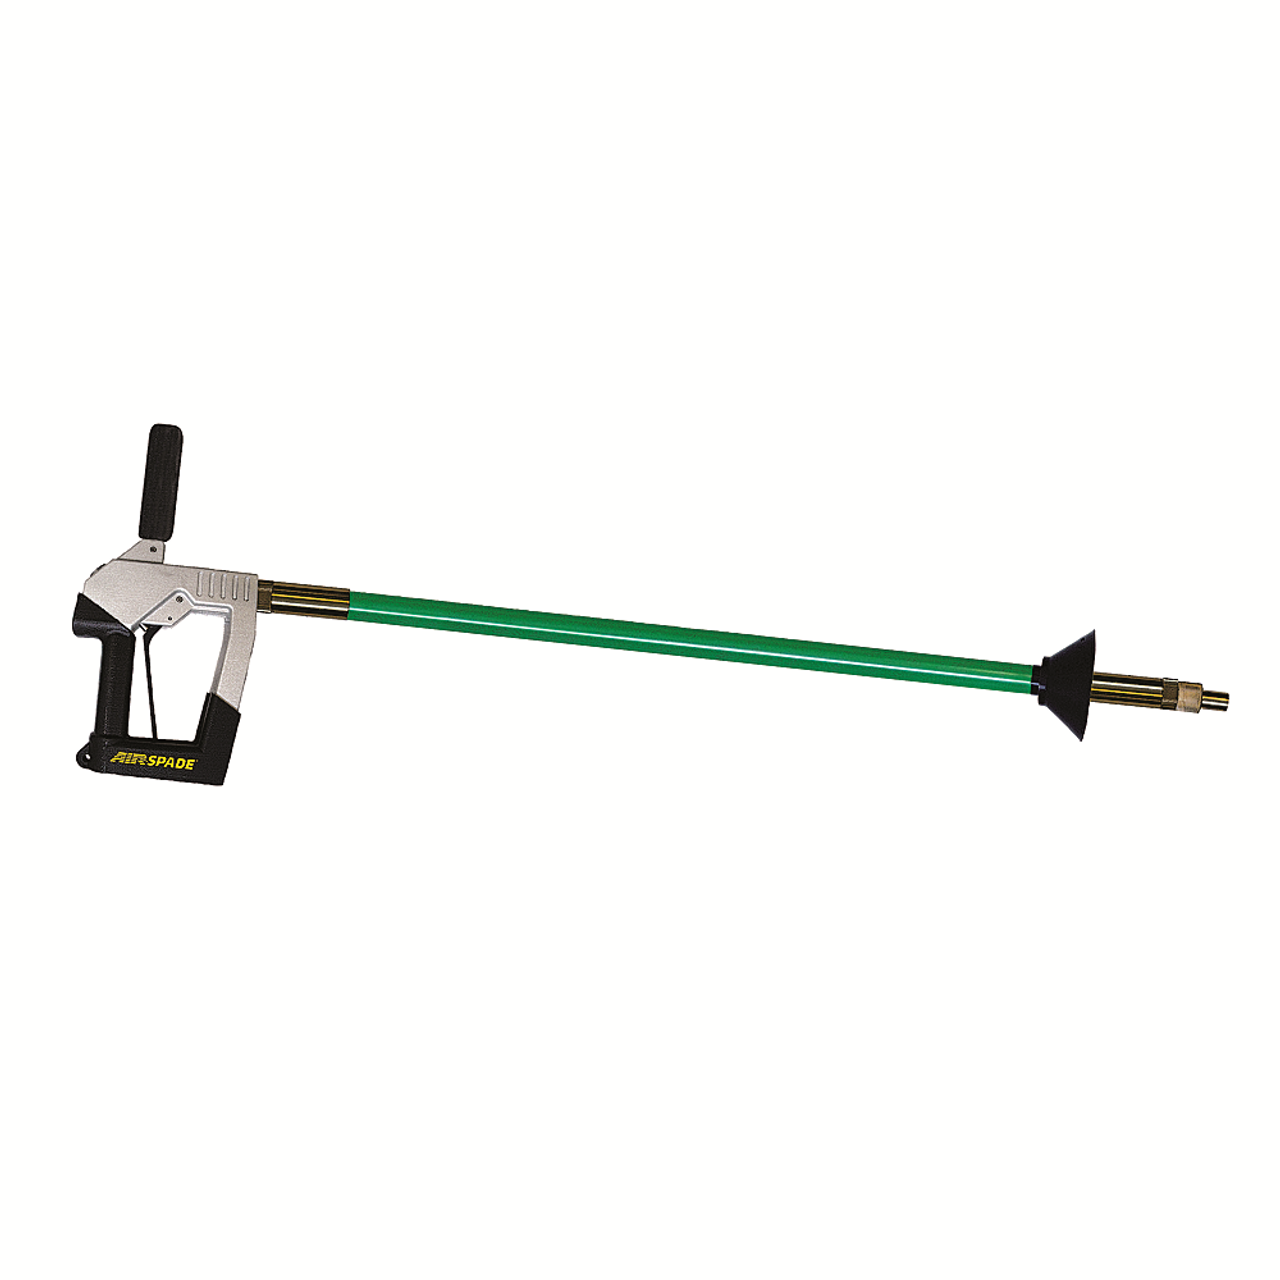 Utility AirSpade 4000 105 cfm with 4 ft Barrel